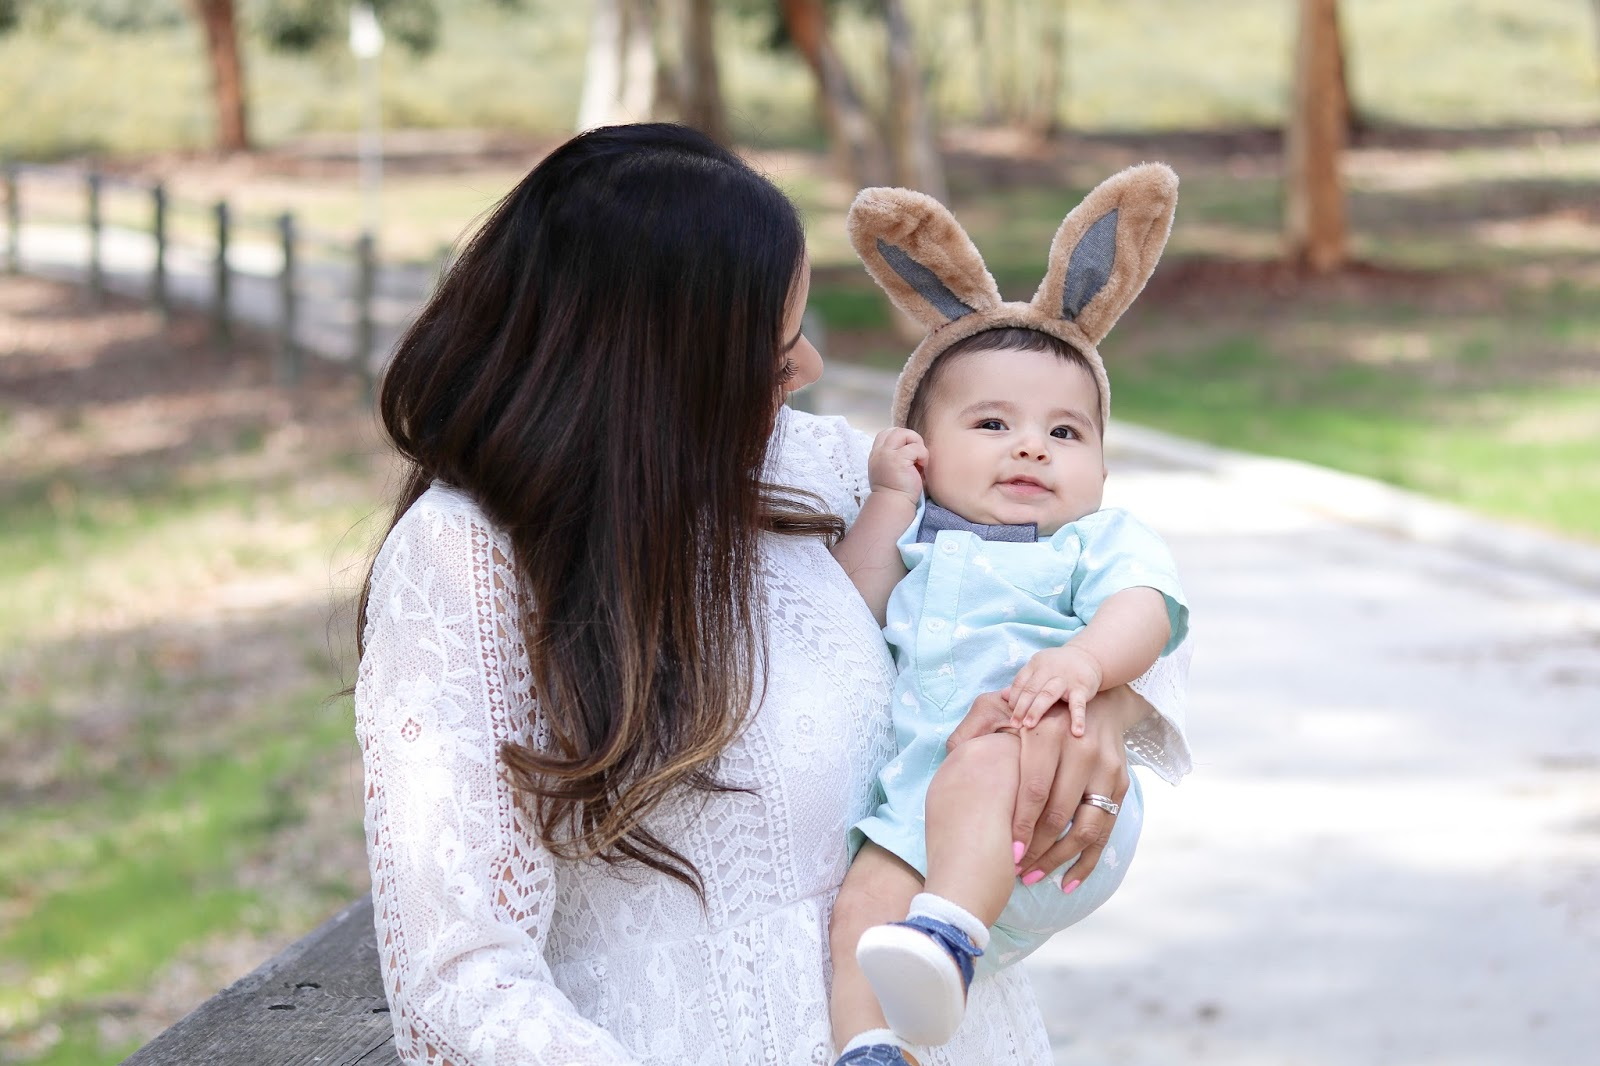 lilbitsofpau easter pic, fashion blogger on easter, baby boy easter outfit idea